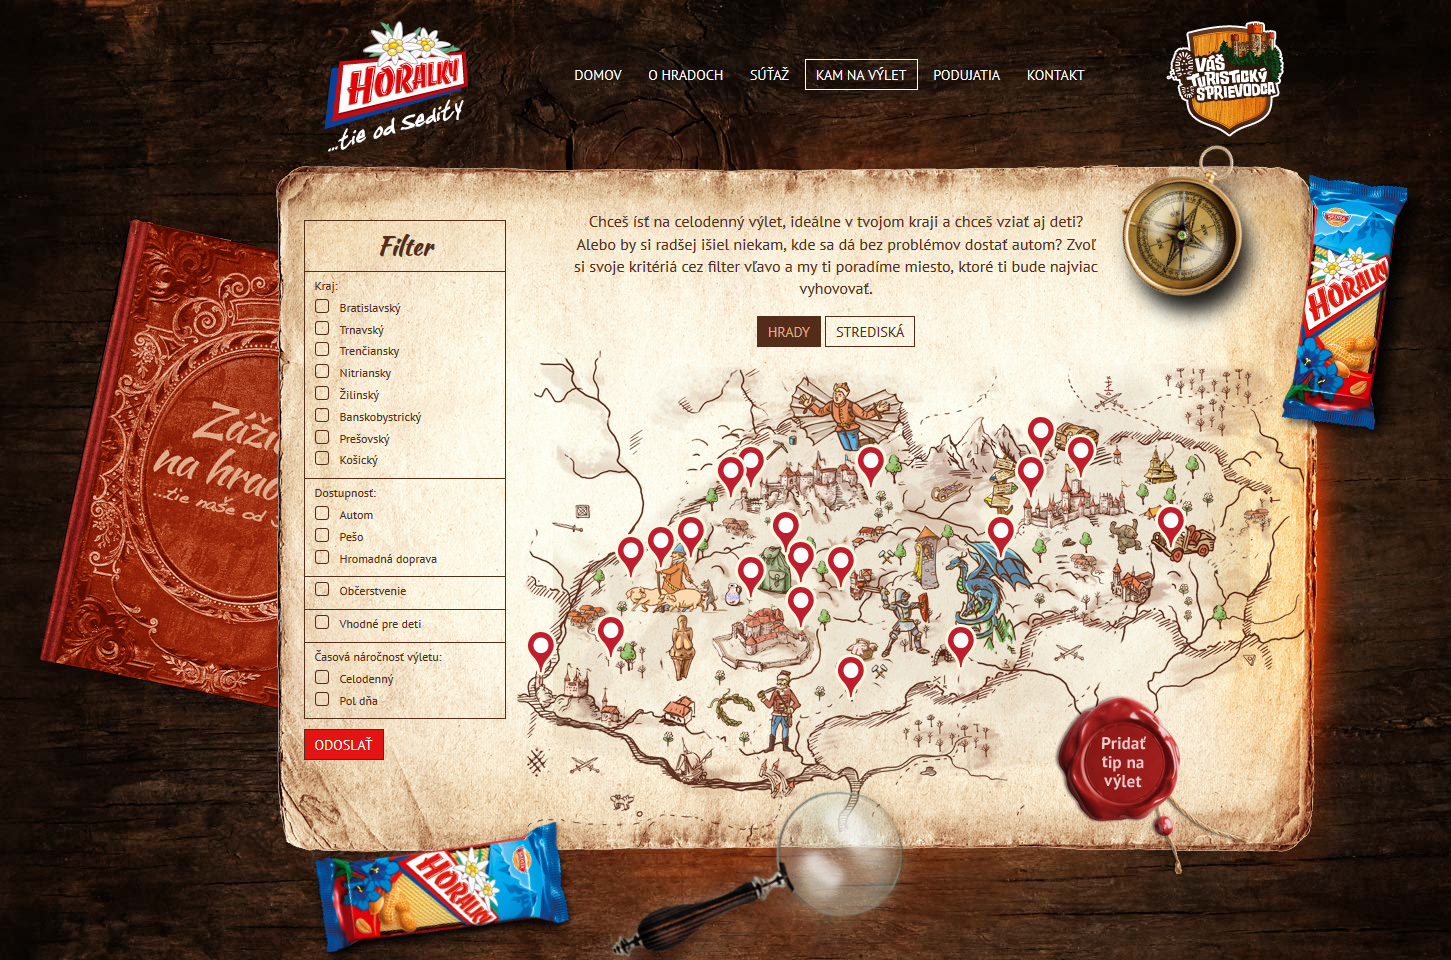 Tourist attractions on the map